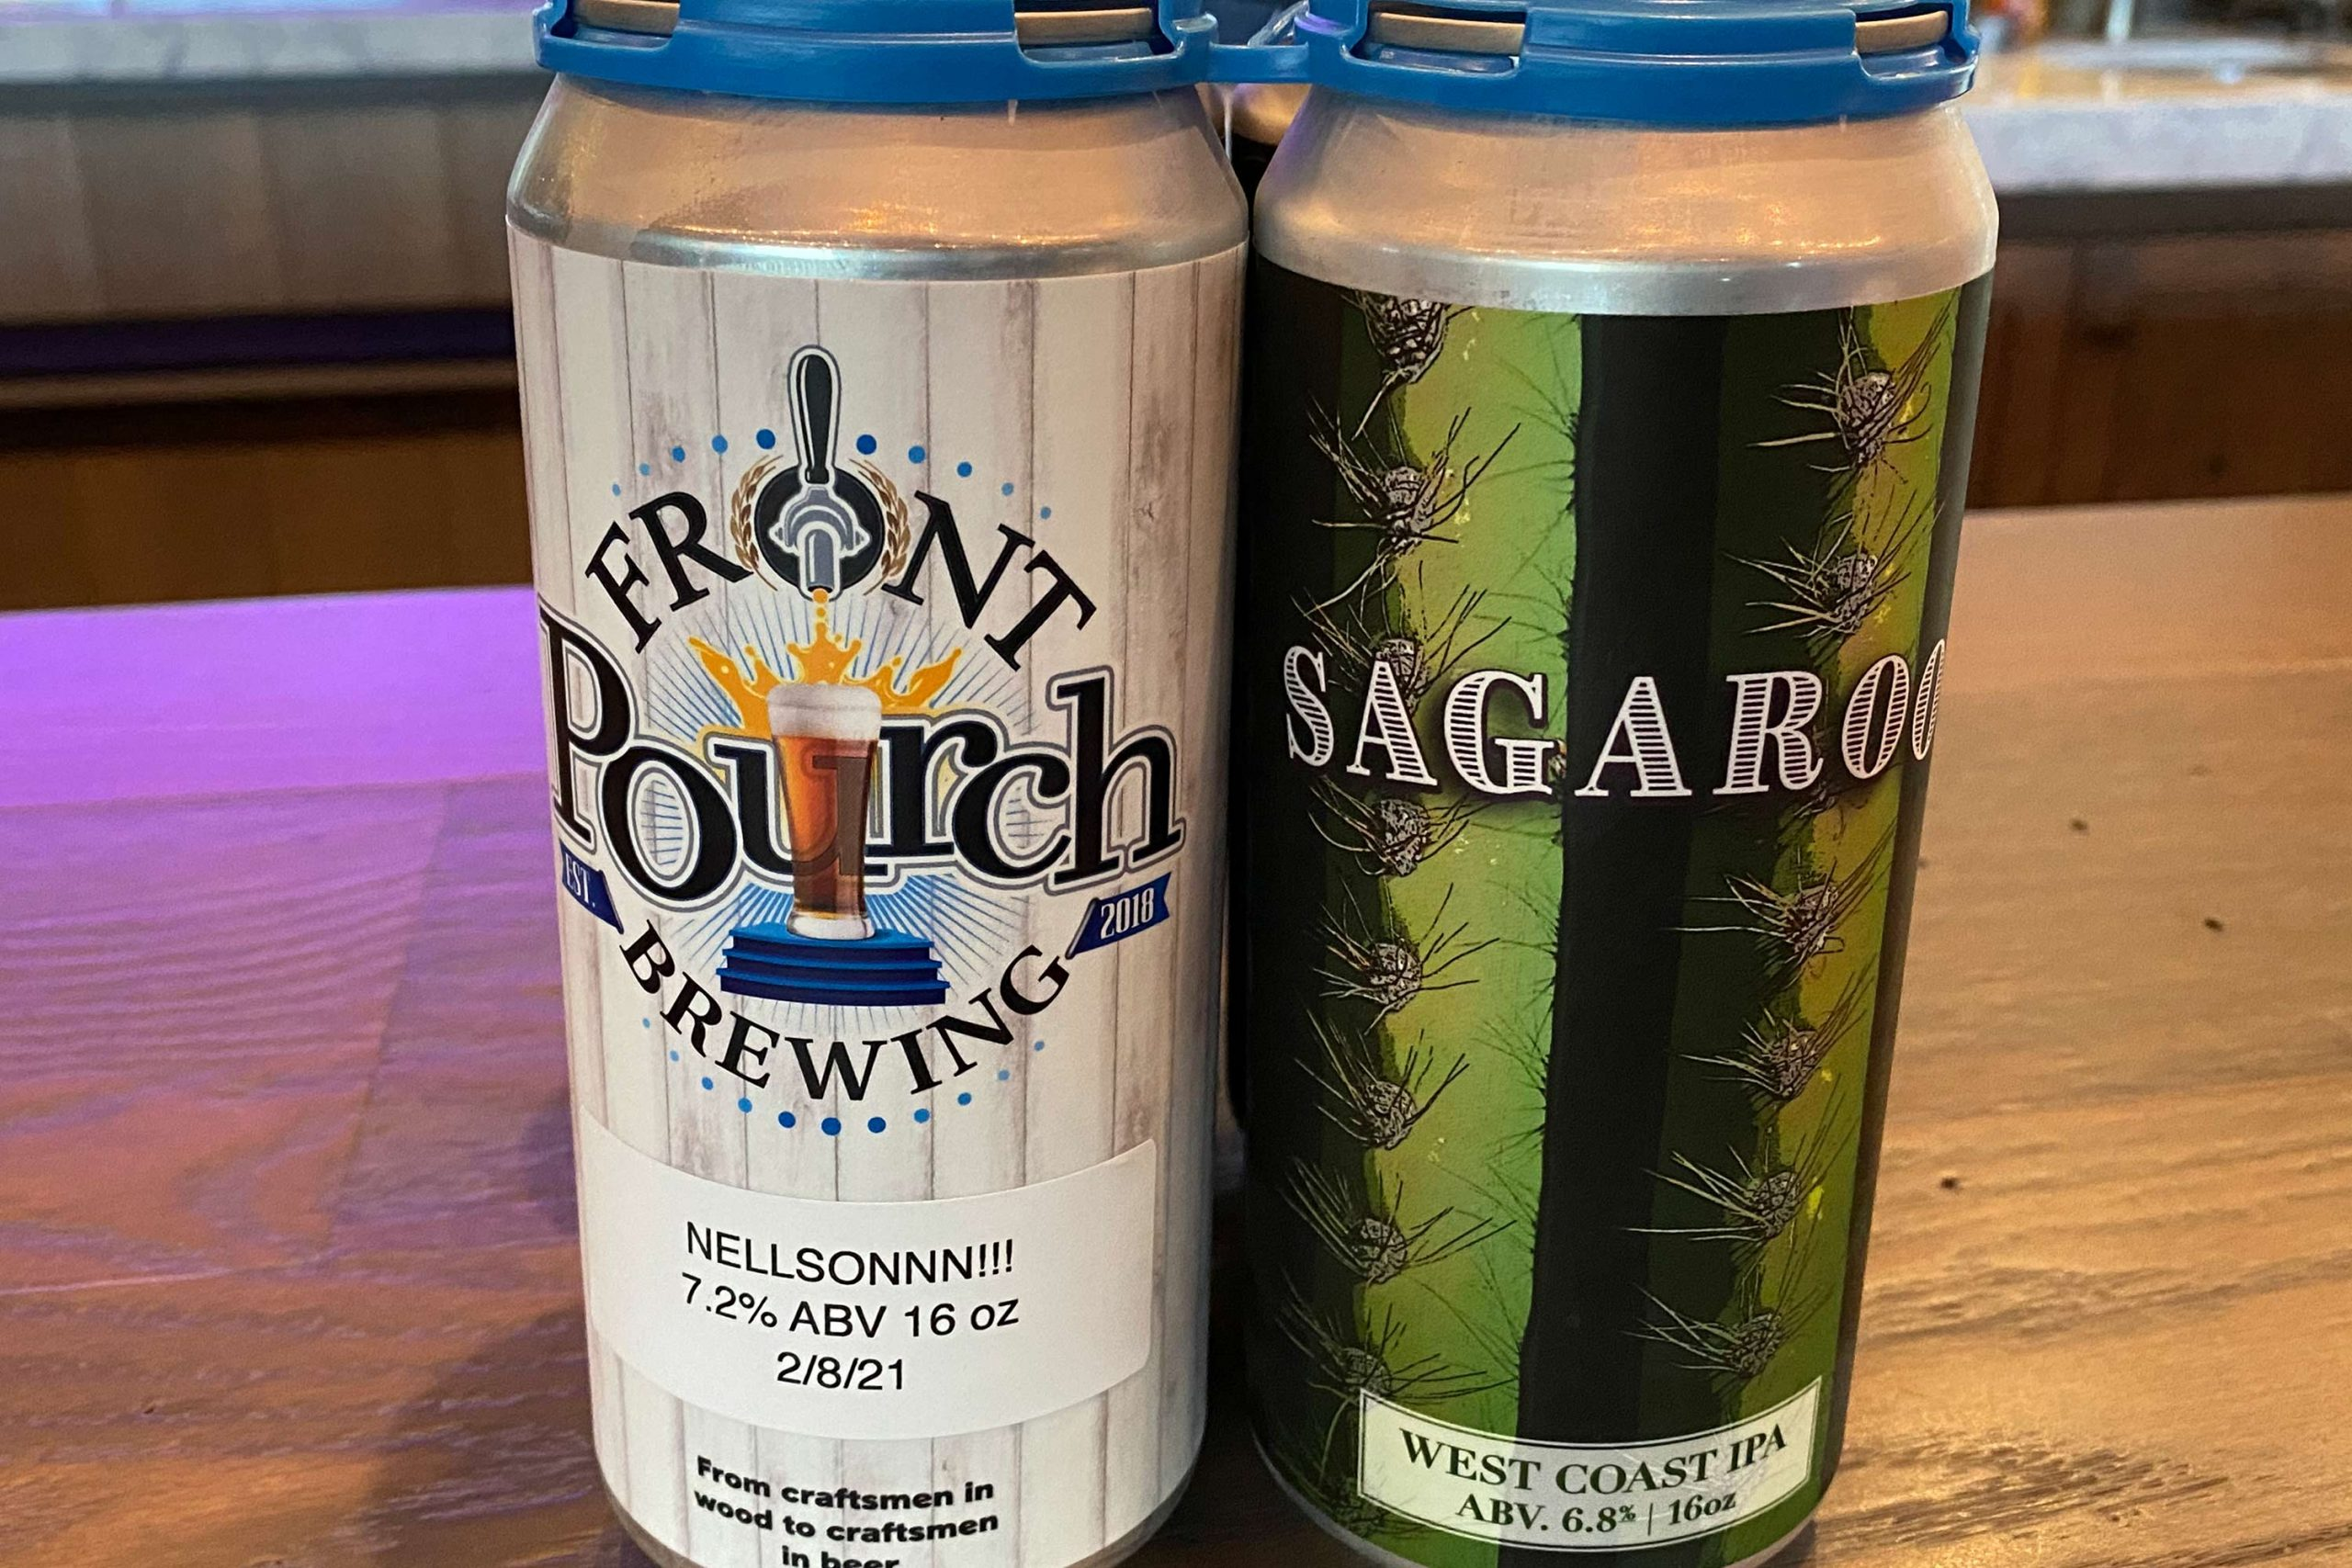 Nellsonnn! & Sagaroo west coast IPA from Front Pourch Brewing